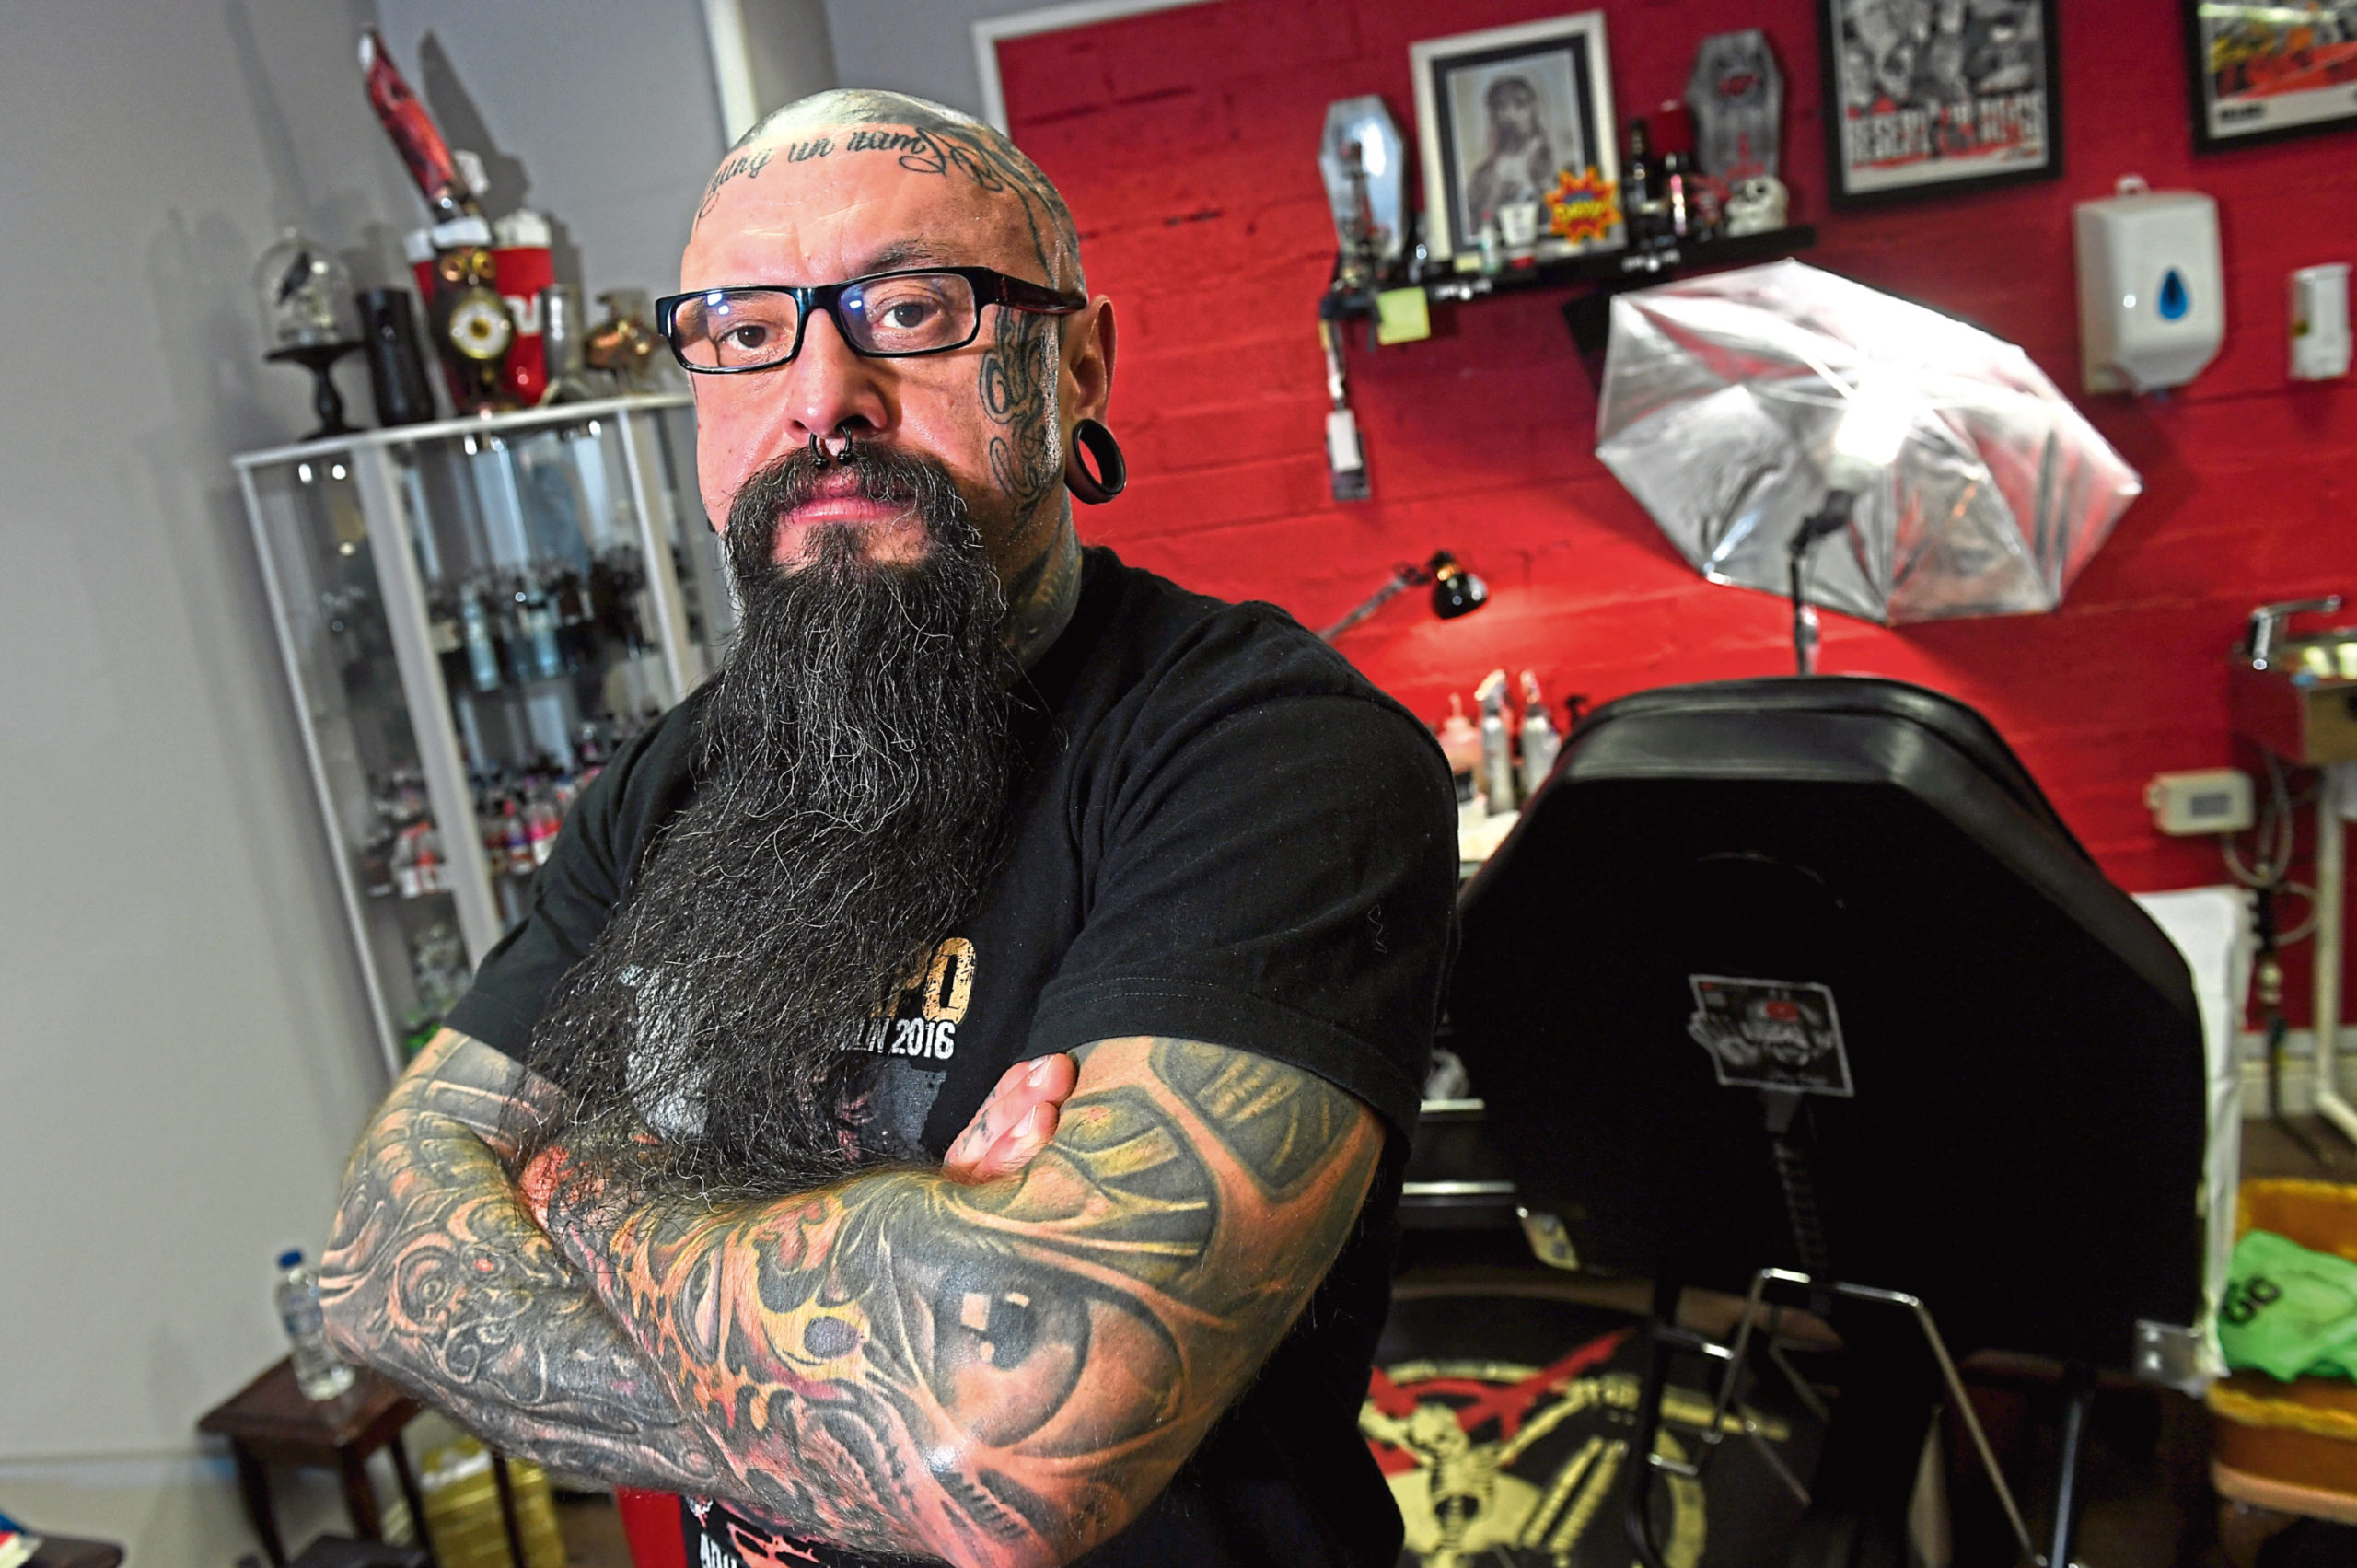 Reign in Blood owner Witold Andrzejewski is helping organise the Aberdeen Tattoo Convention to promote Aberdeen